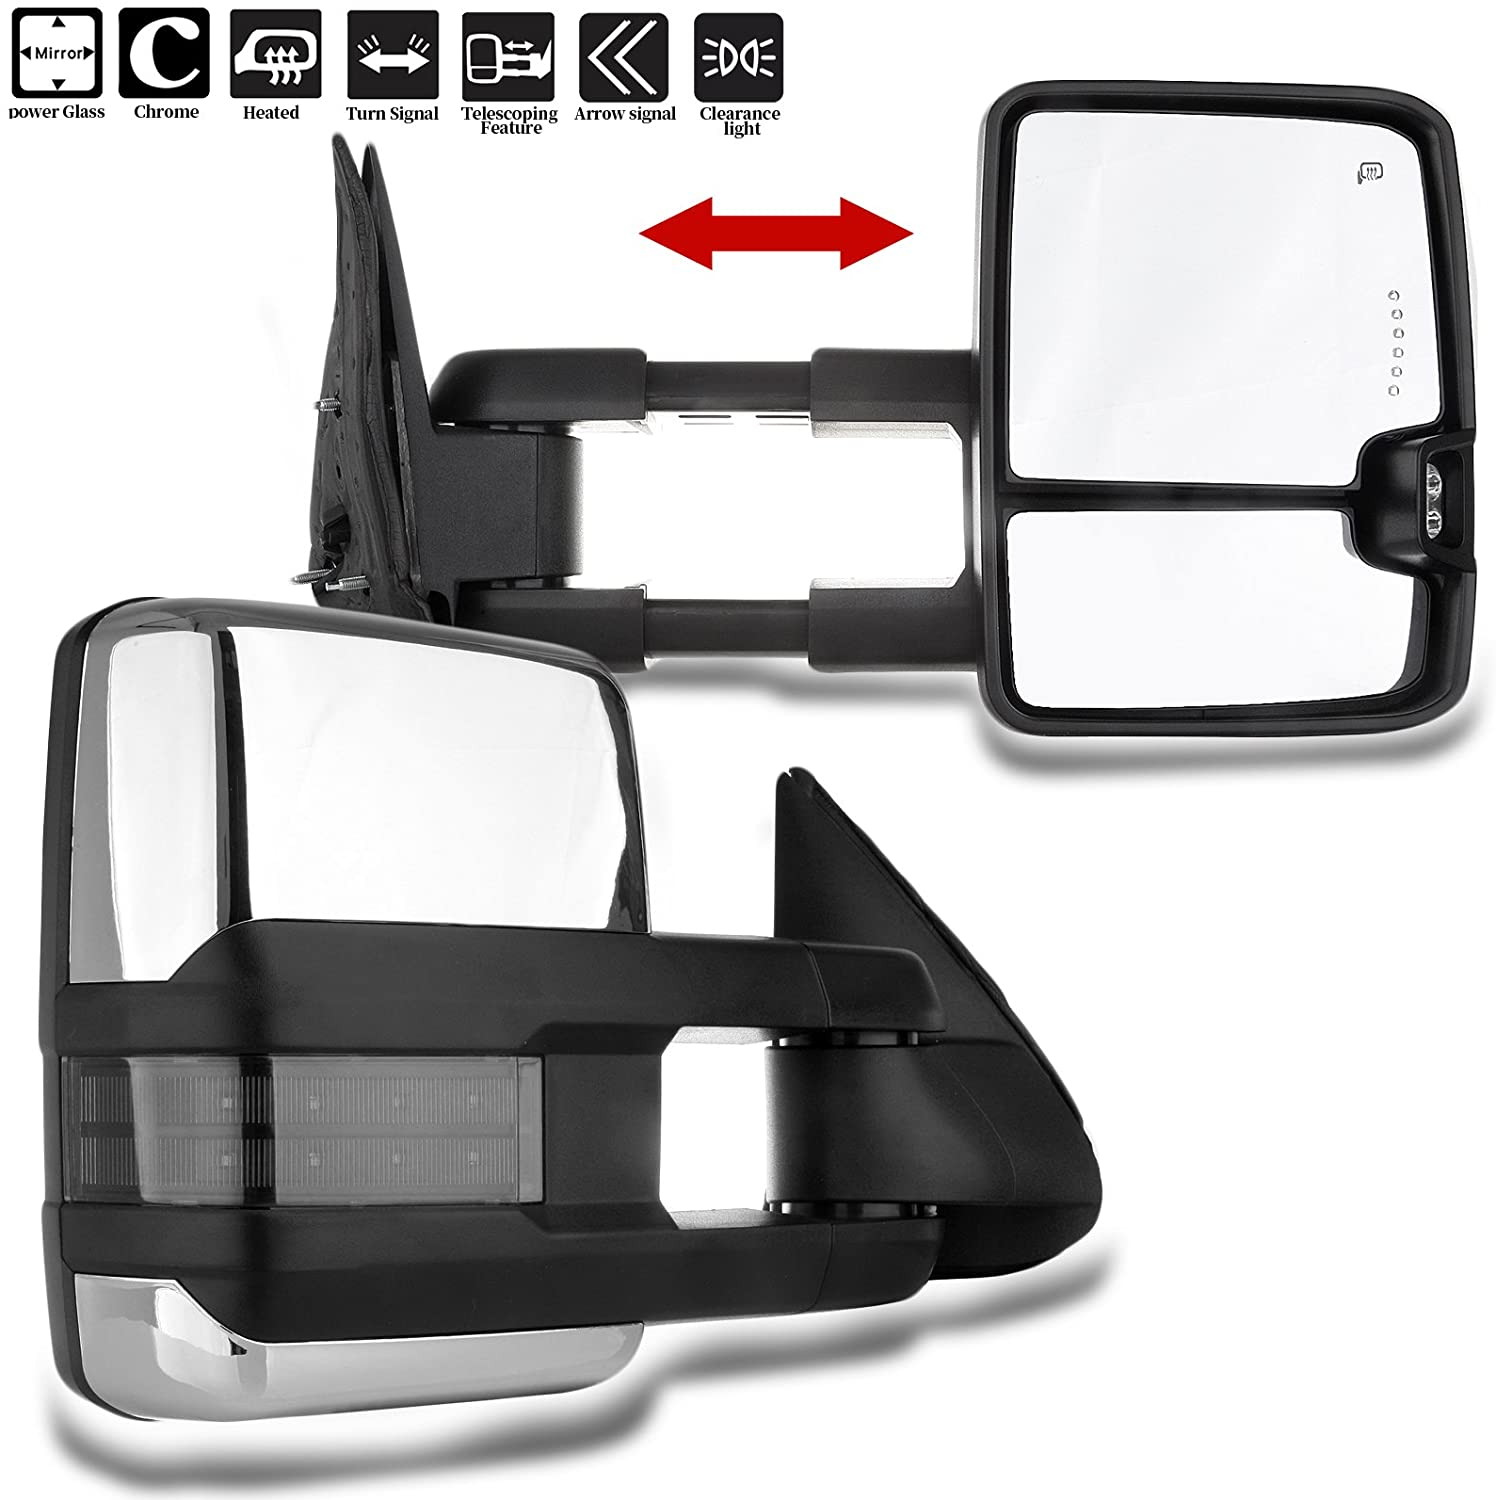 SCITOO Towing Mirrors fit 1999-2002 for Chevy Silverado Sierra 2000-2002 Tahoe Yukon Chrome Cover Power Heated Towing Mirrors LED Signal Light Pair Set Mirrors